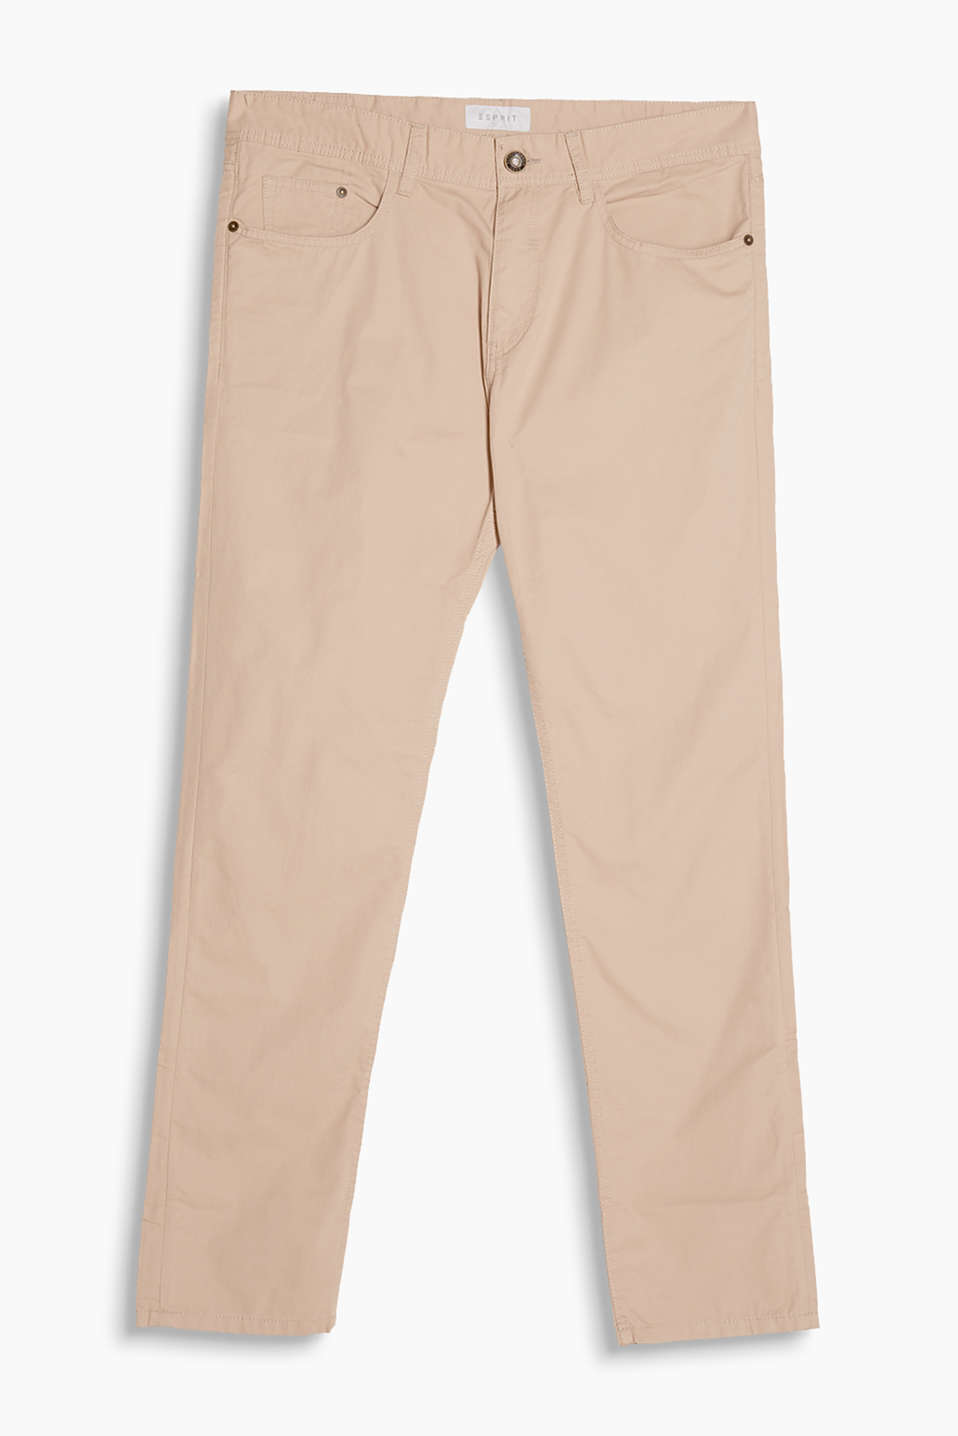 Trousers in a classic five-pocket style